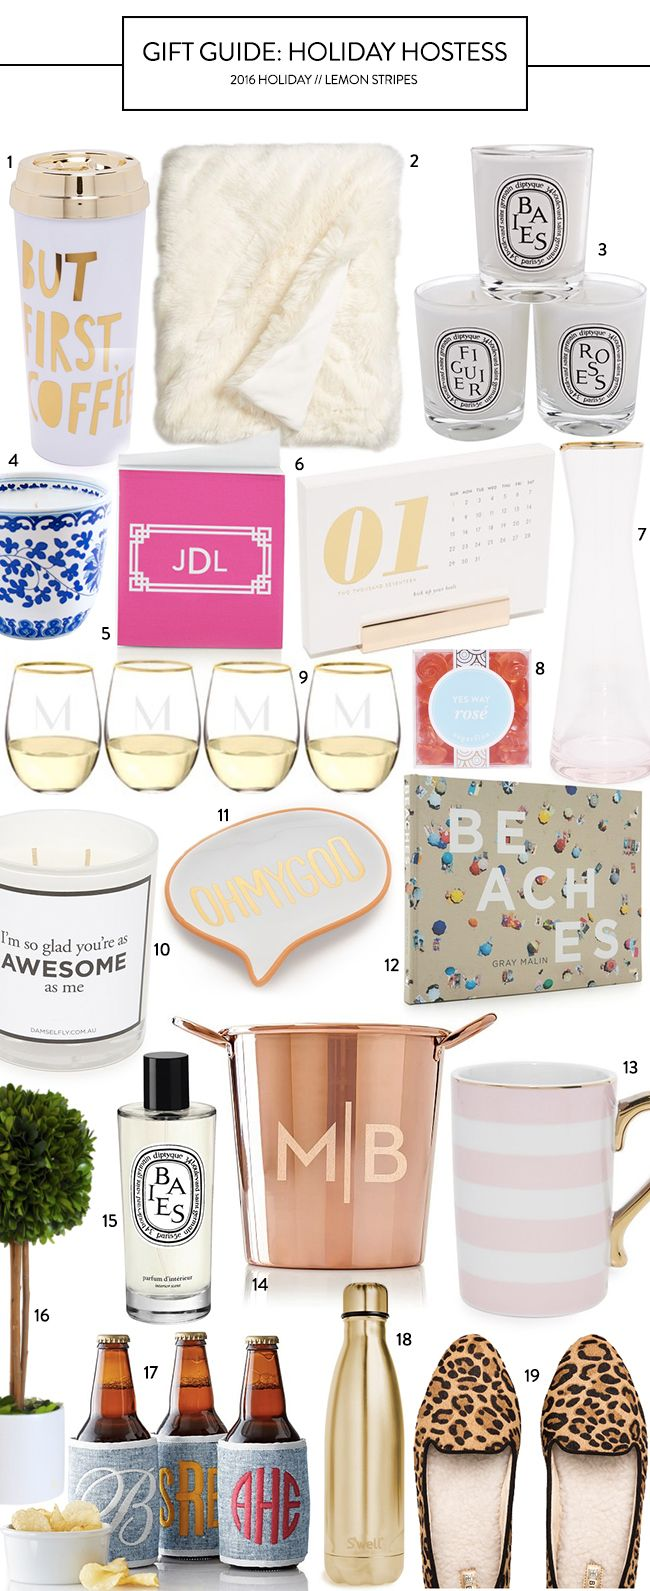 Holiday Hostess Gifts   gifts   giving   Pinterest   Gifts, Hostess ...